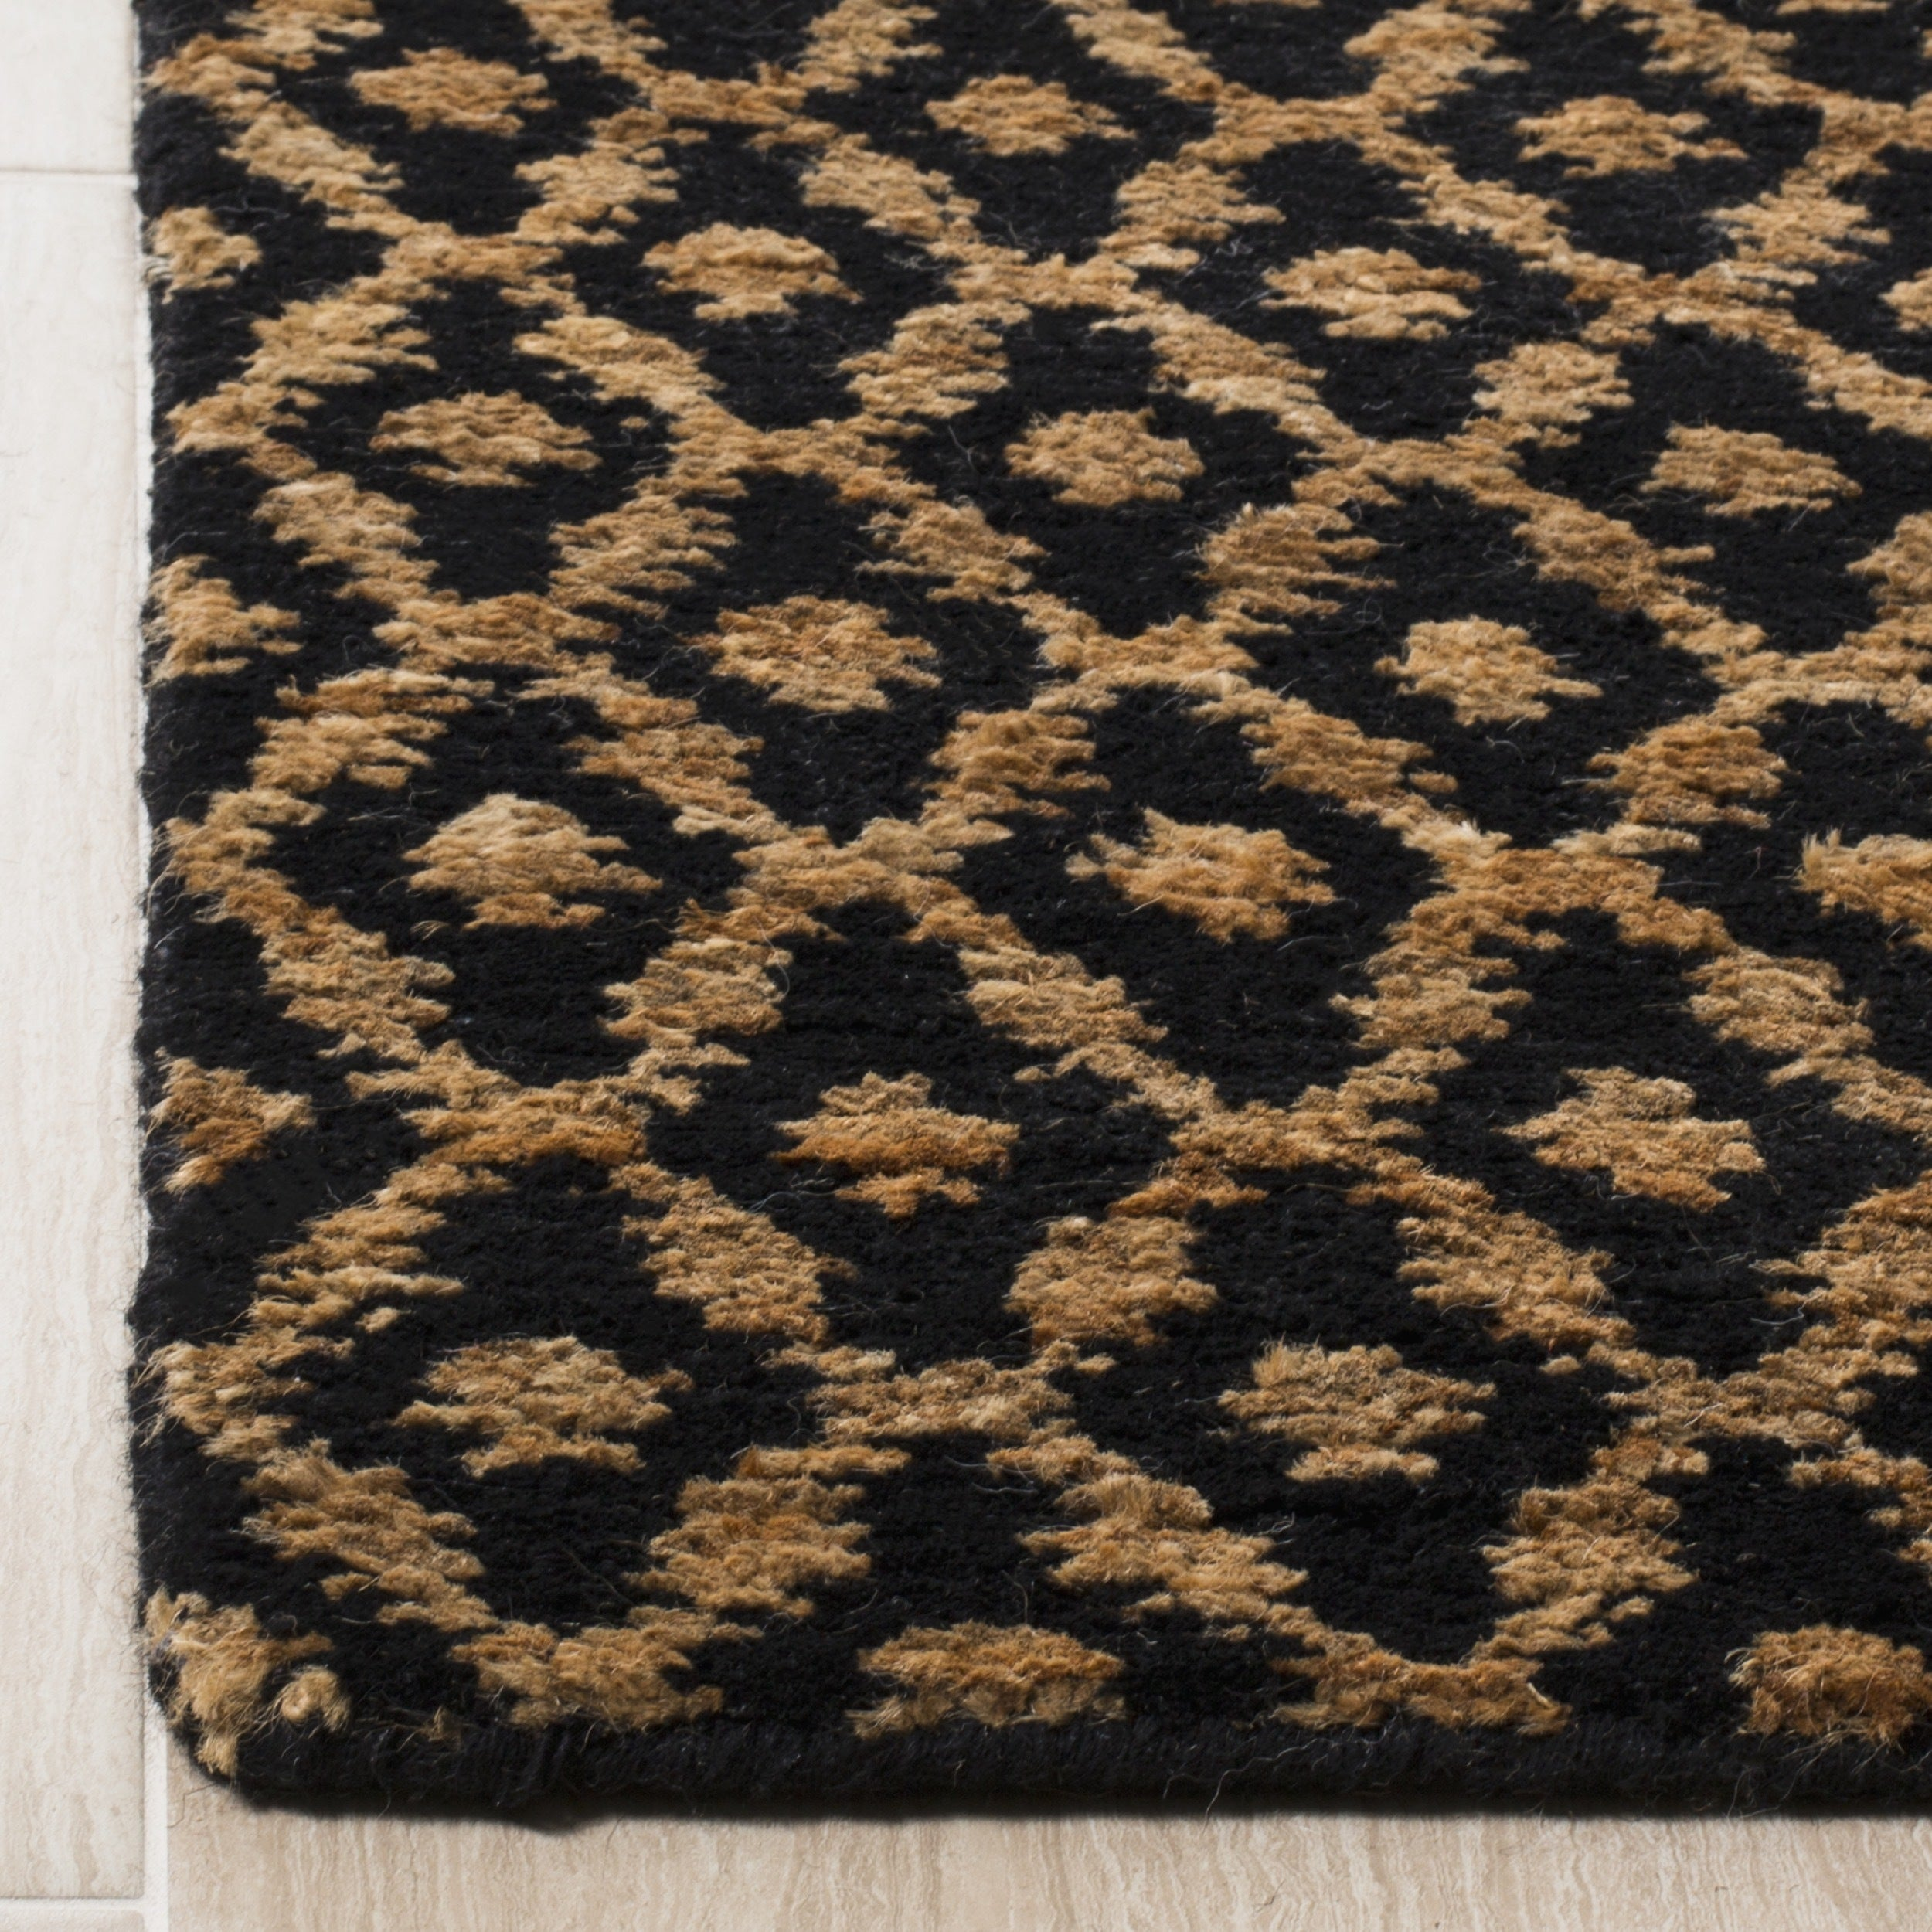 amalfi ebay scroll homes olefin ornate gold taupe runner better circles or gardens lavishly innovative and black rug area x